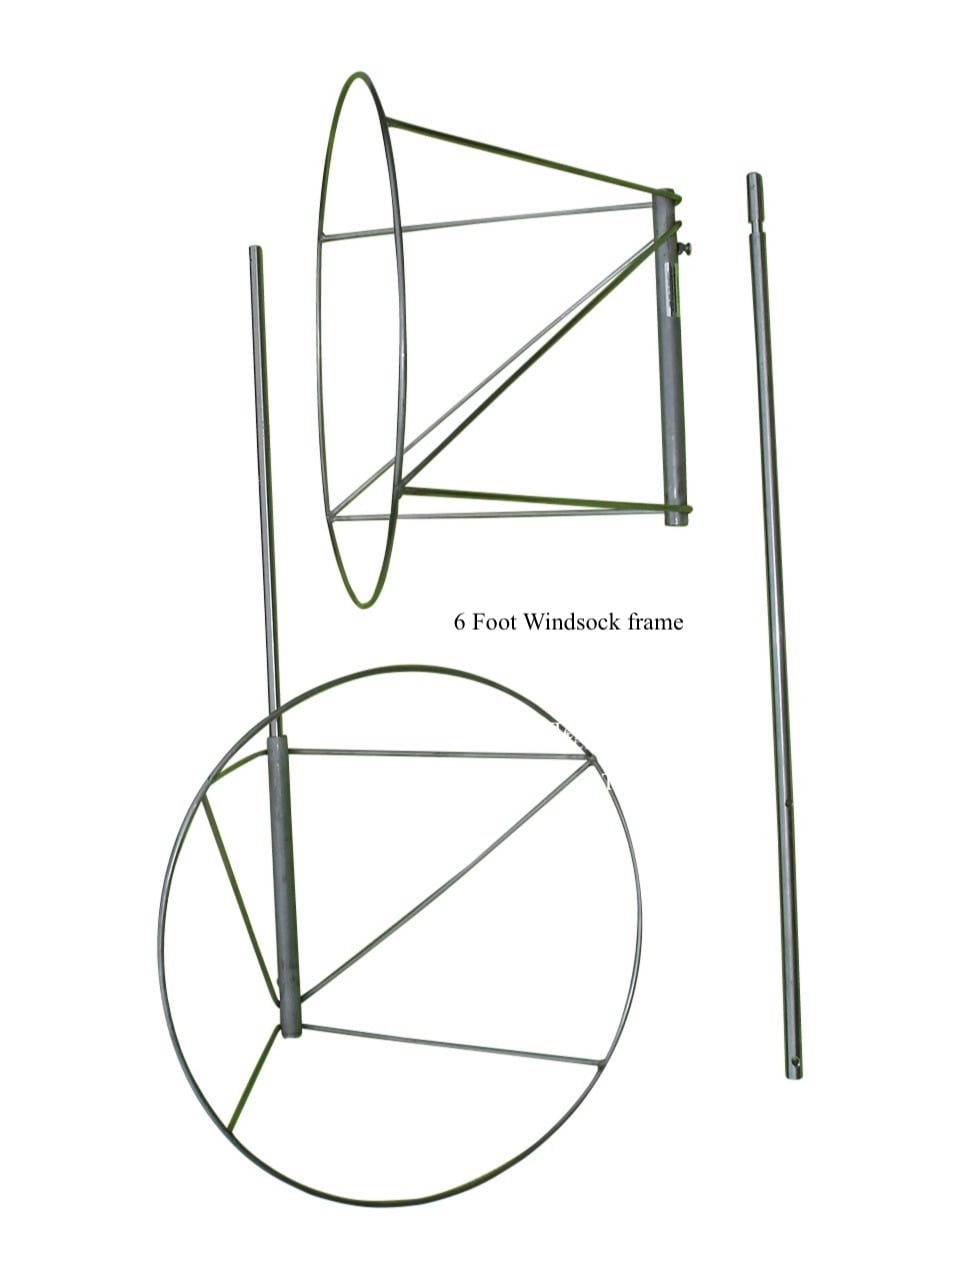 6 foot frame X 1 - Commercial Windsock Frames (4, 6, 8, and 12 foot)